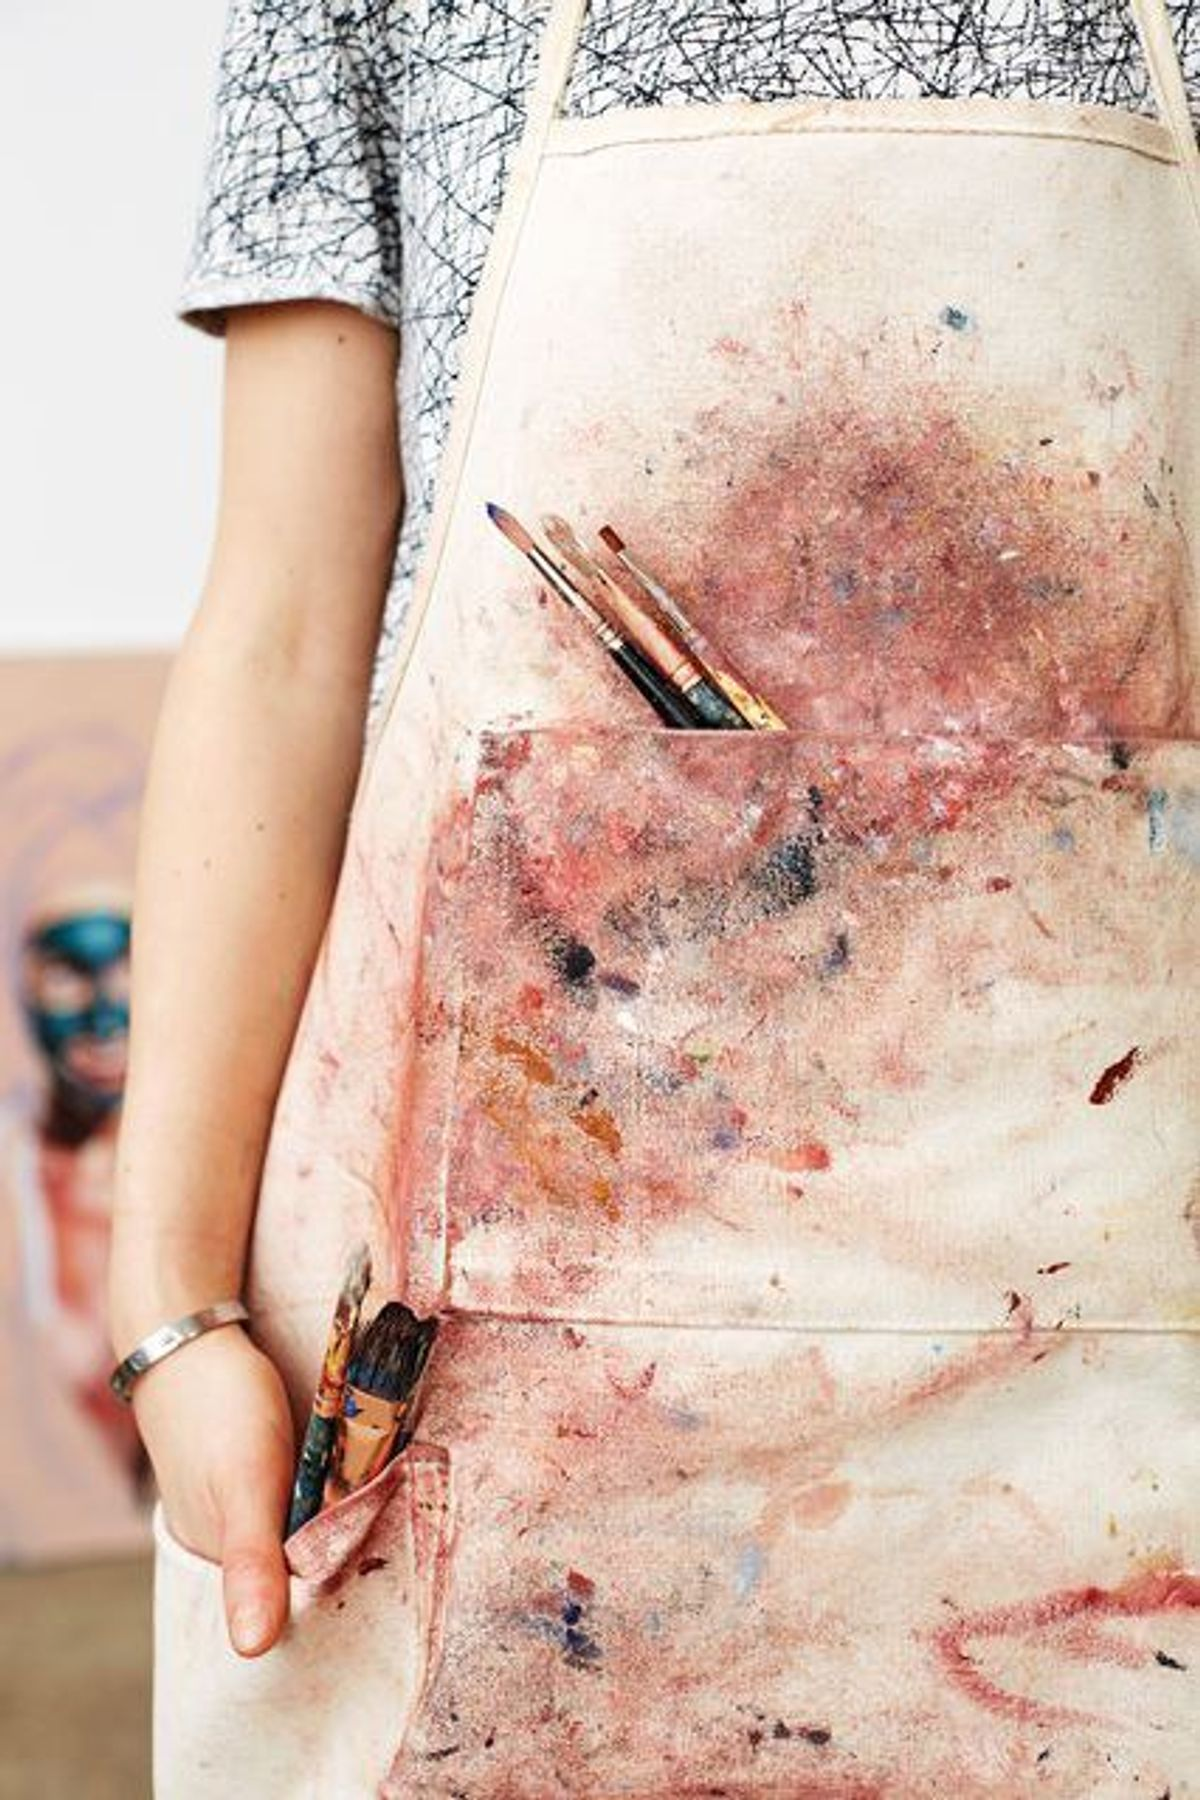 10 Reasons Why Being An Art Major Isn't As Easy As It Looks